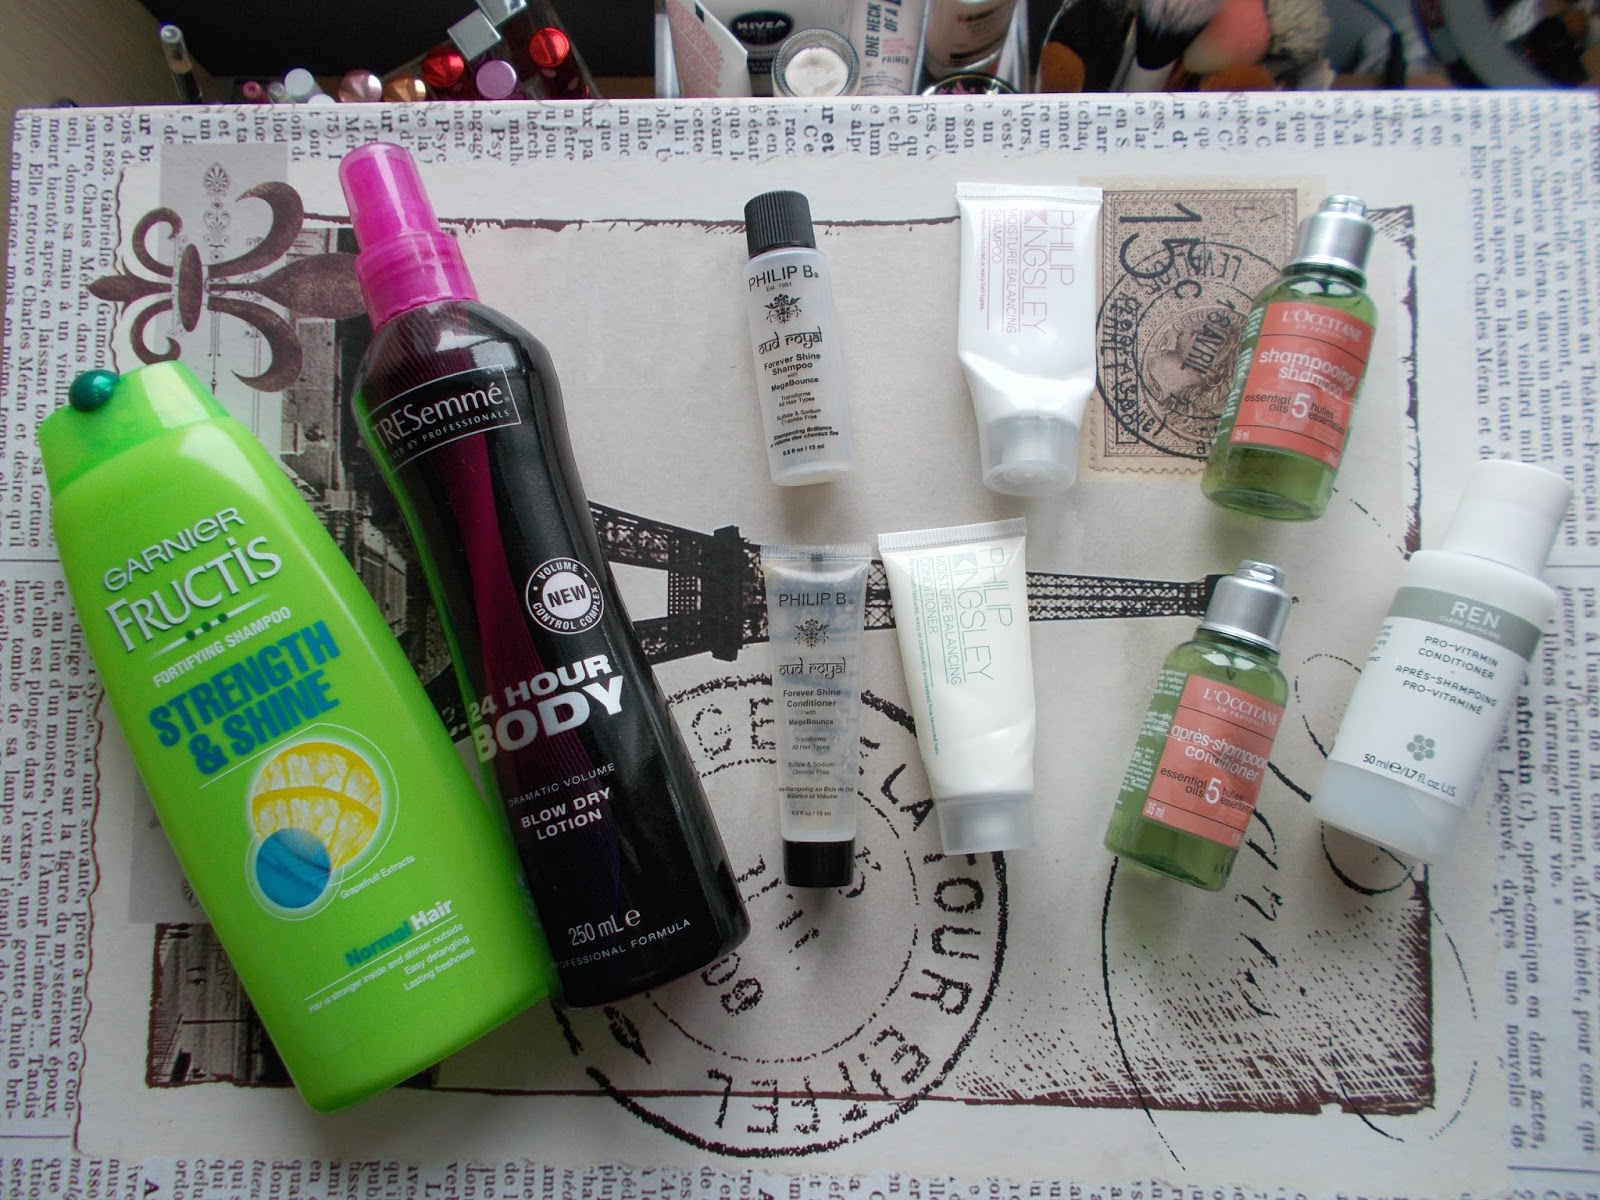 product reviews haircare garnier tresemme l'occitane philip kingsley philip b ren review